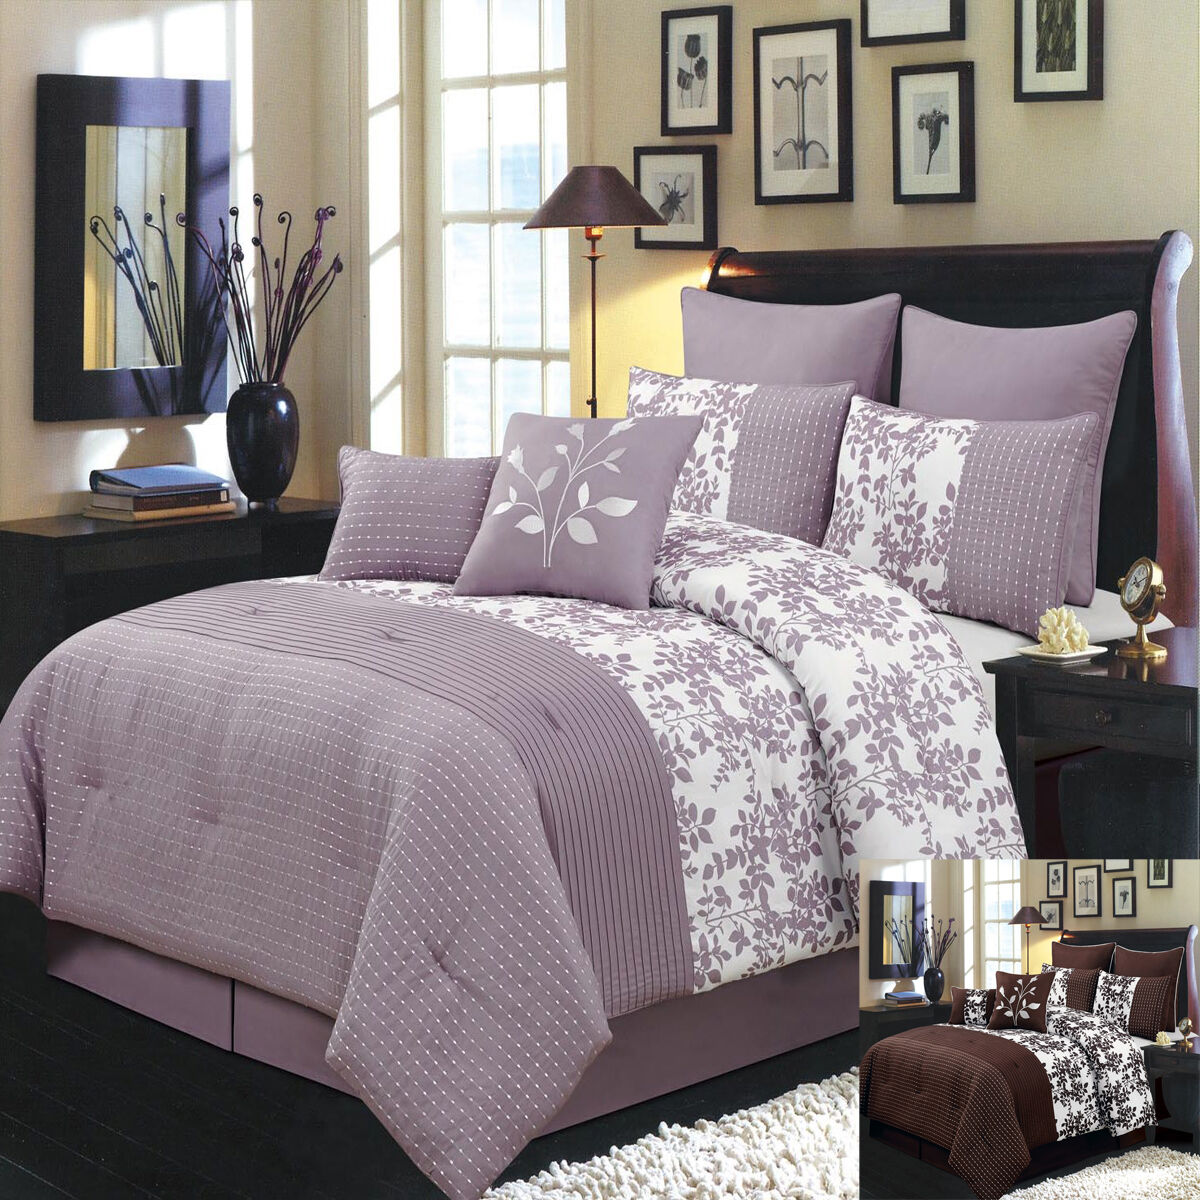 LUXURIOUS Bliss 100% Polyester Bed in a Bag - 2 Styles   5 Sizes